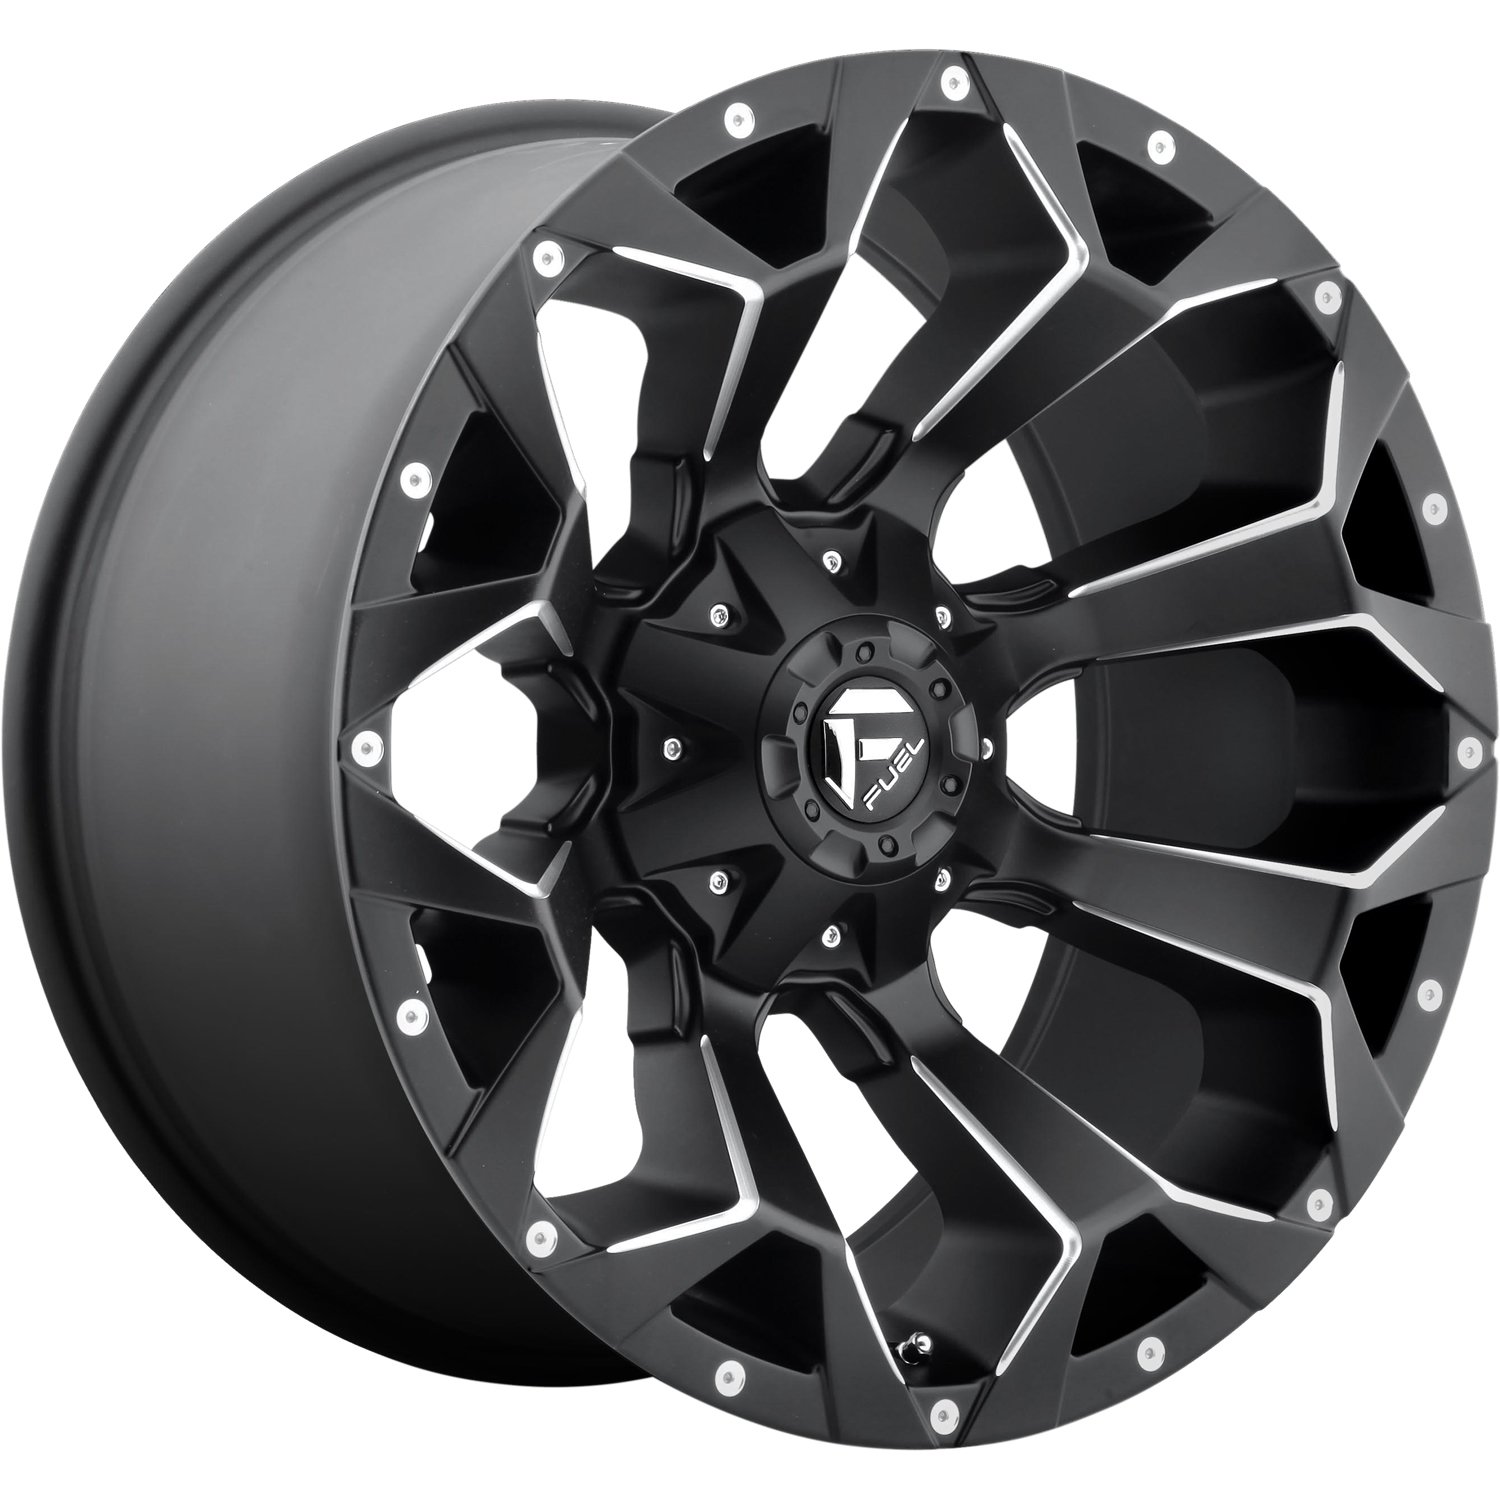 18 x 9. inches //5 x 5 inches, -12 mm Offset Fuel Assault black Wheel with Painted Finish